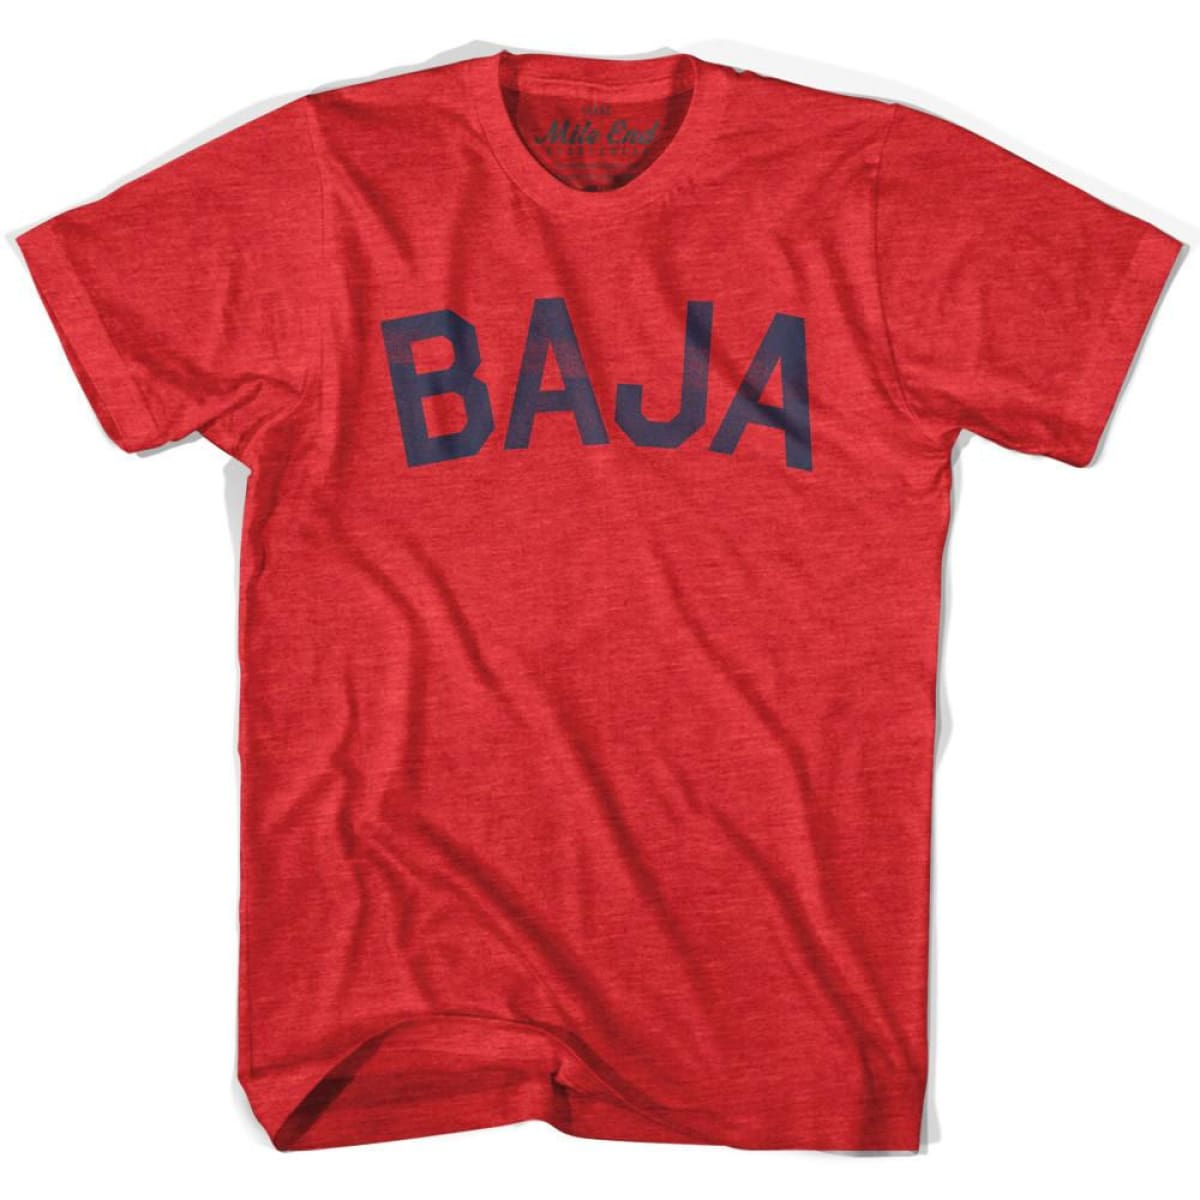 Baja City Vintage T-shirt - Heather Red / Adult X-Small - Mile End City